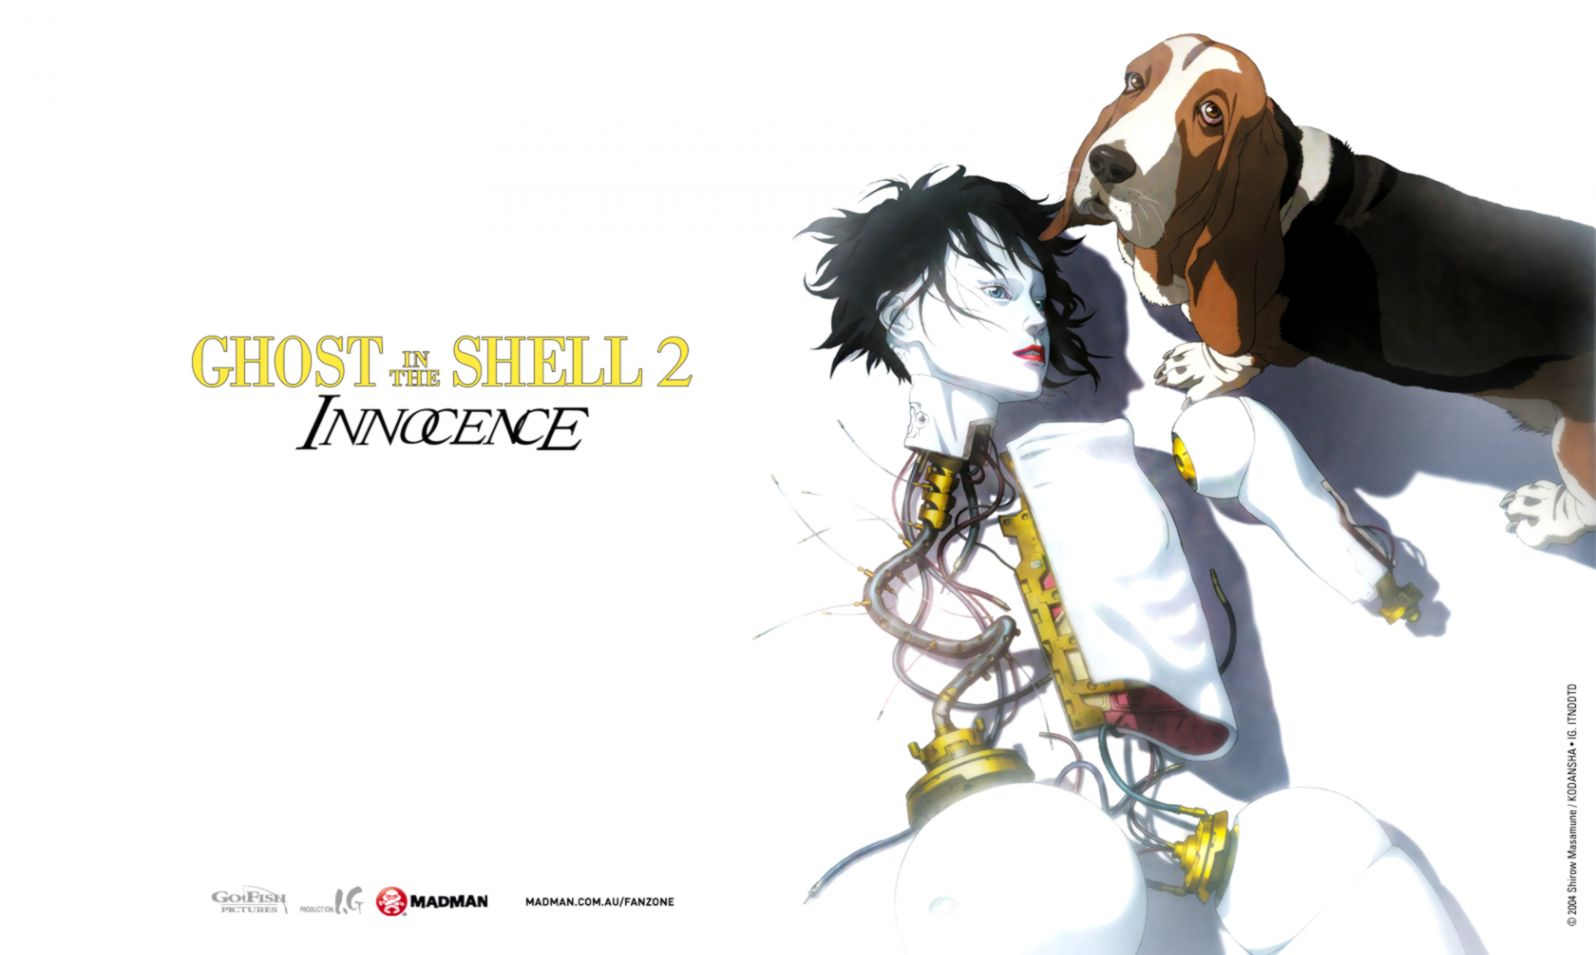 Ghost In The Shell 2 Innocence Wallpapers Wallpapers Engine